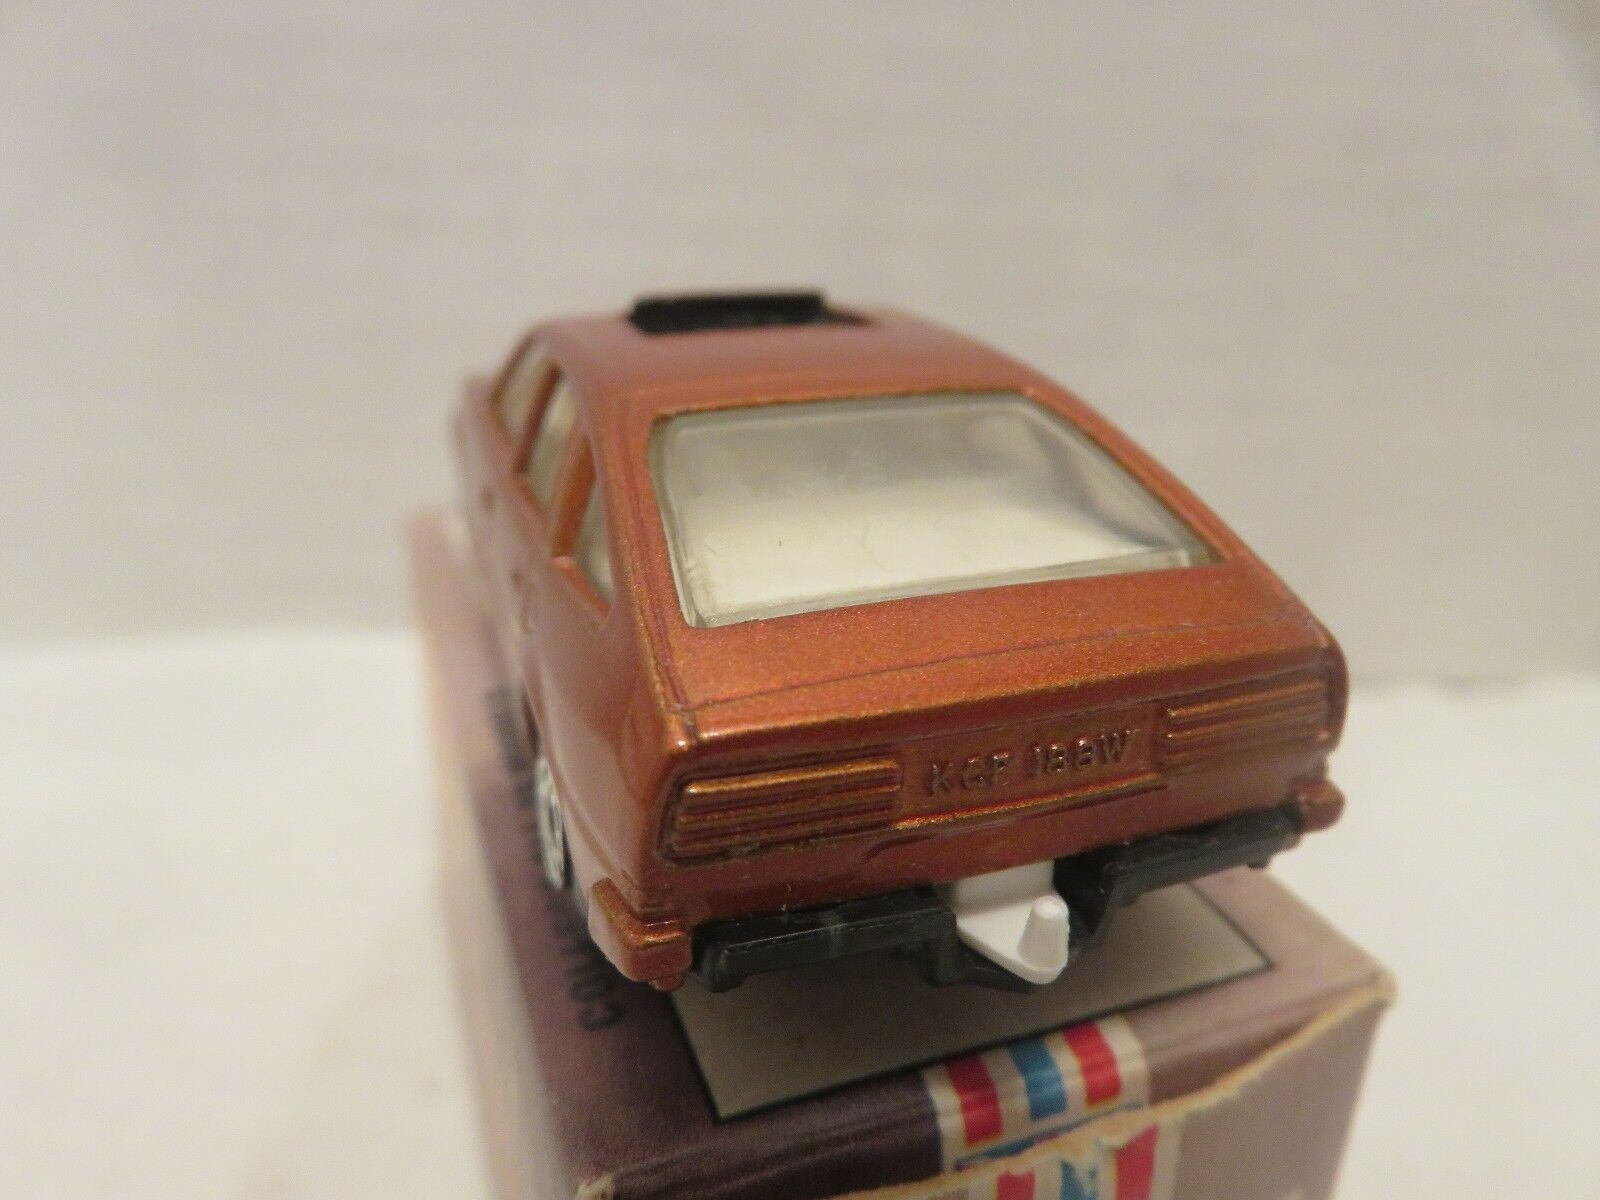 1980 Matchbox Lesney Rover 3500 Metallic Bronze White Interior Die-Cast Die-Cast Die-Cast Metal f8b742